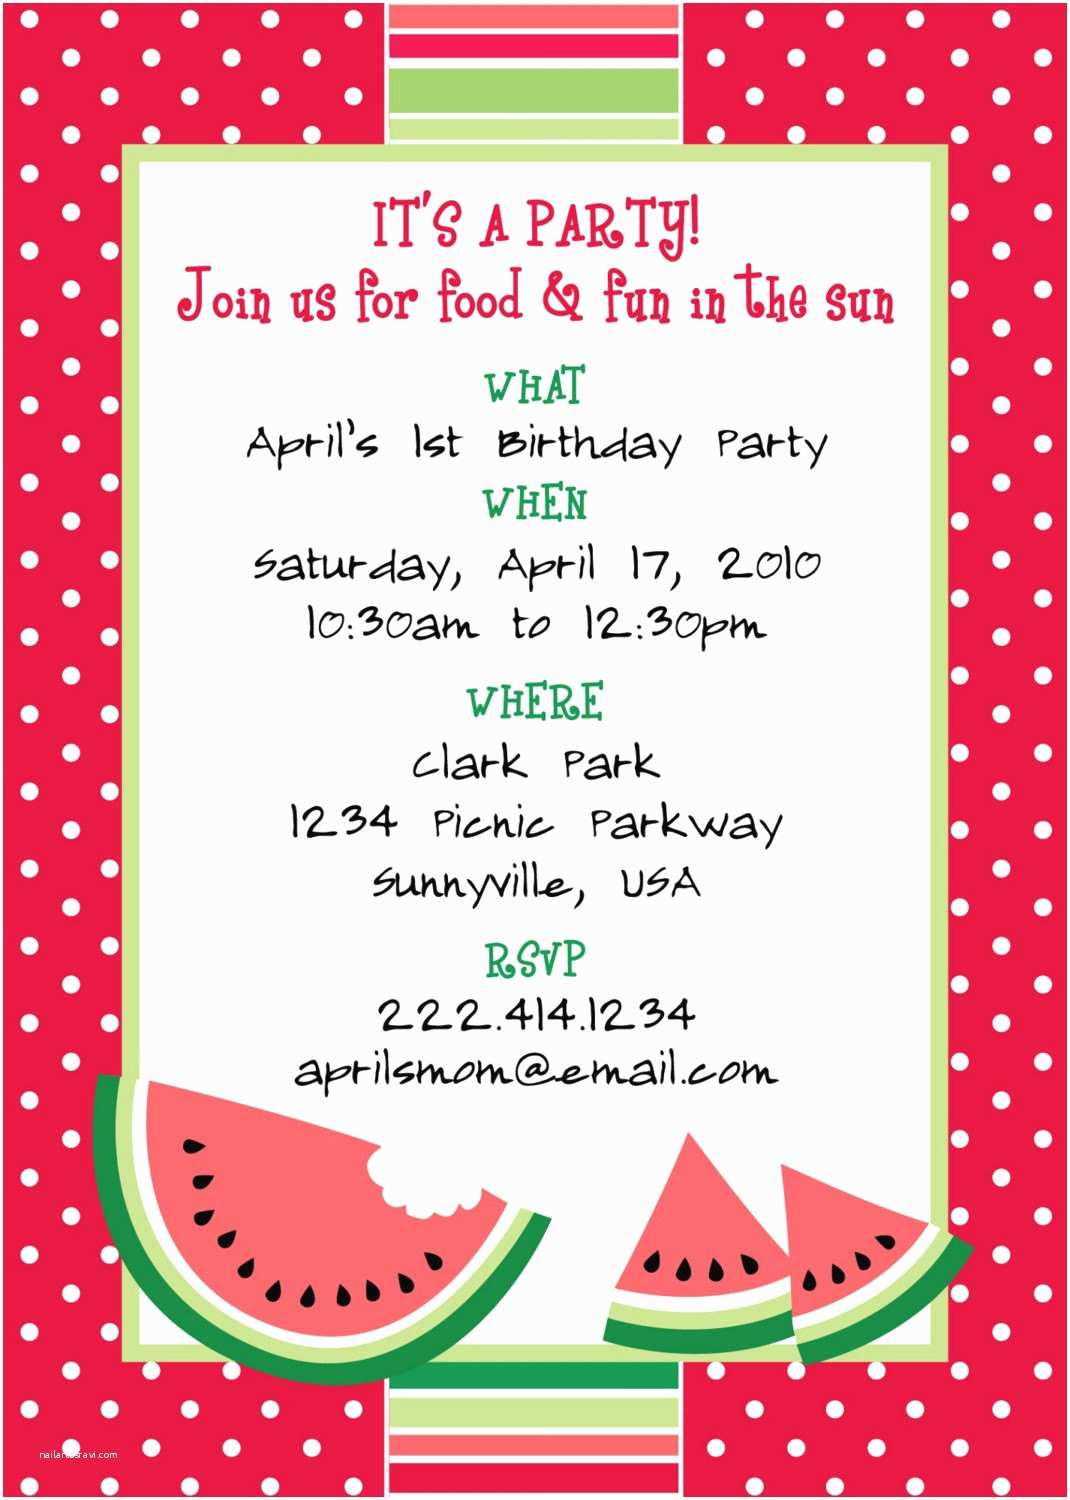 Party Invitation Template Printable Watermelon themed Party Invitation